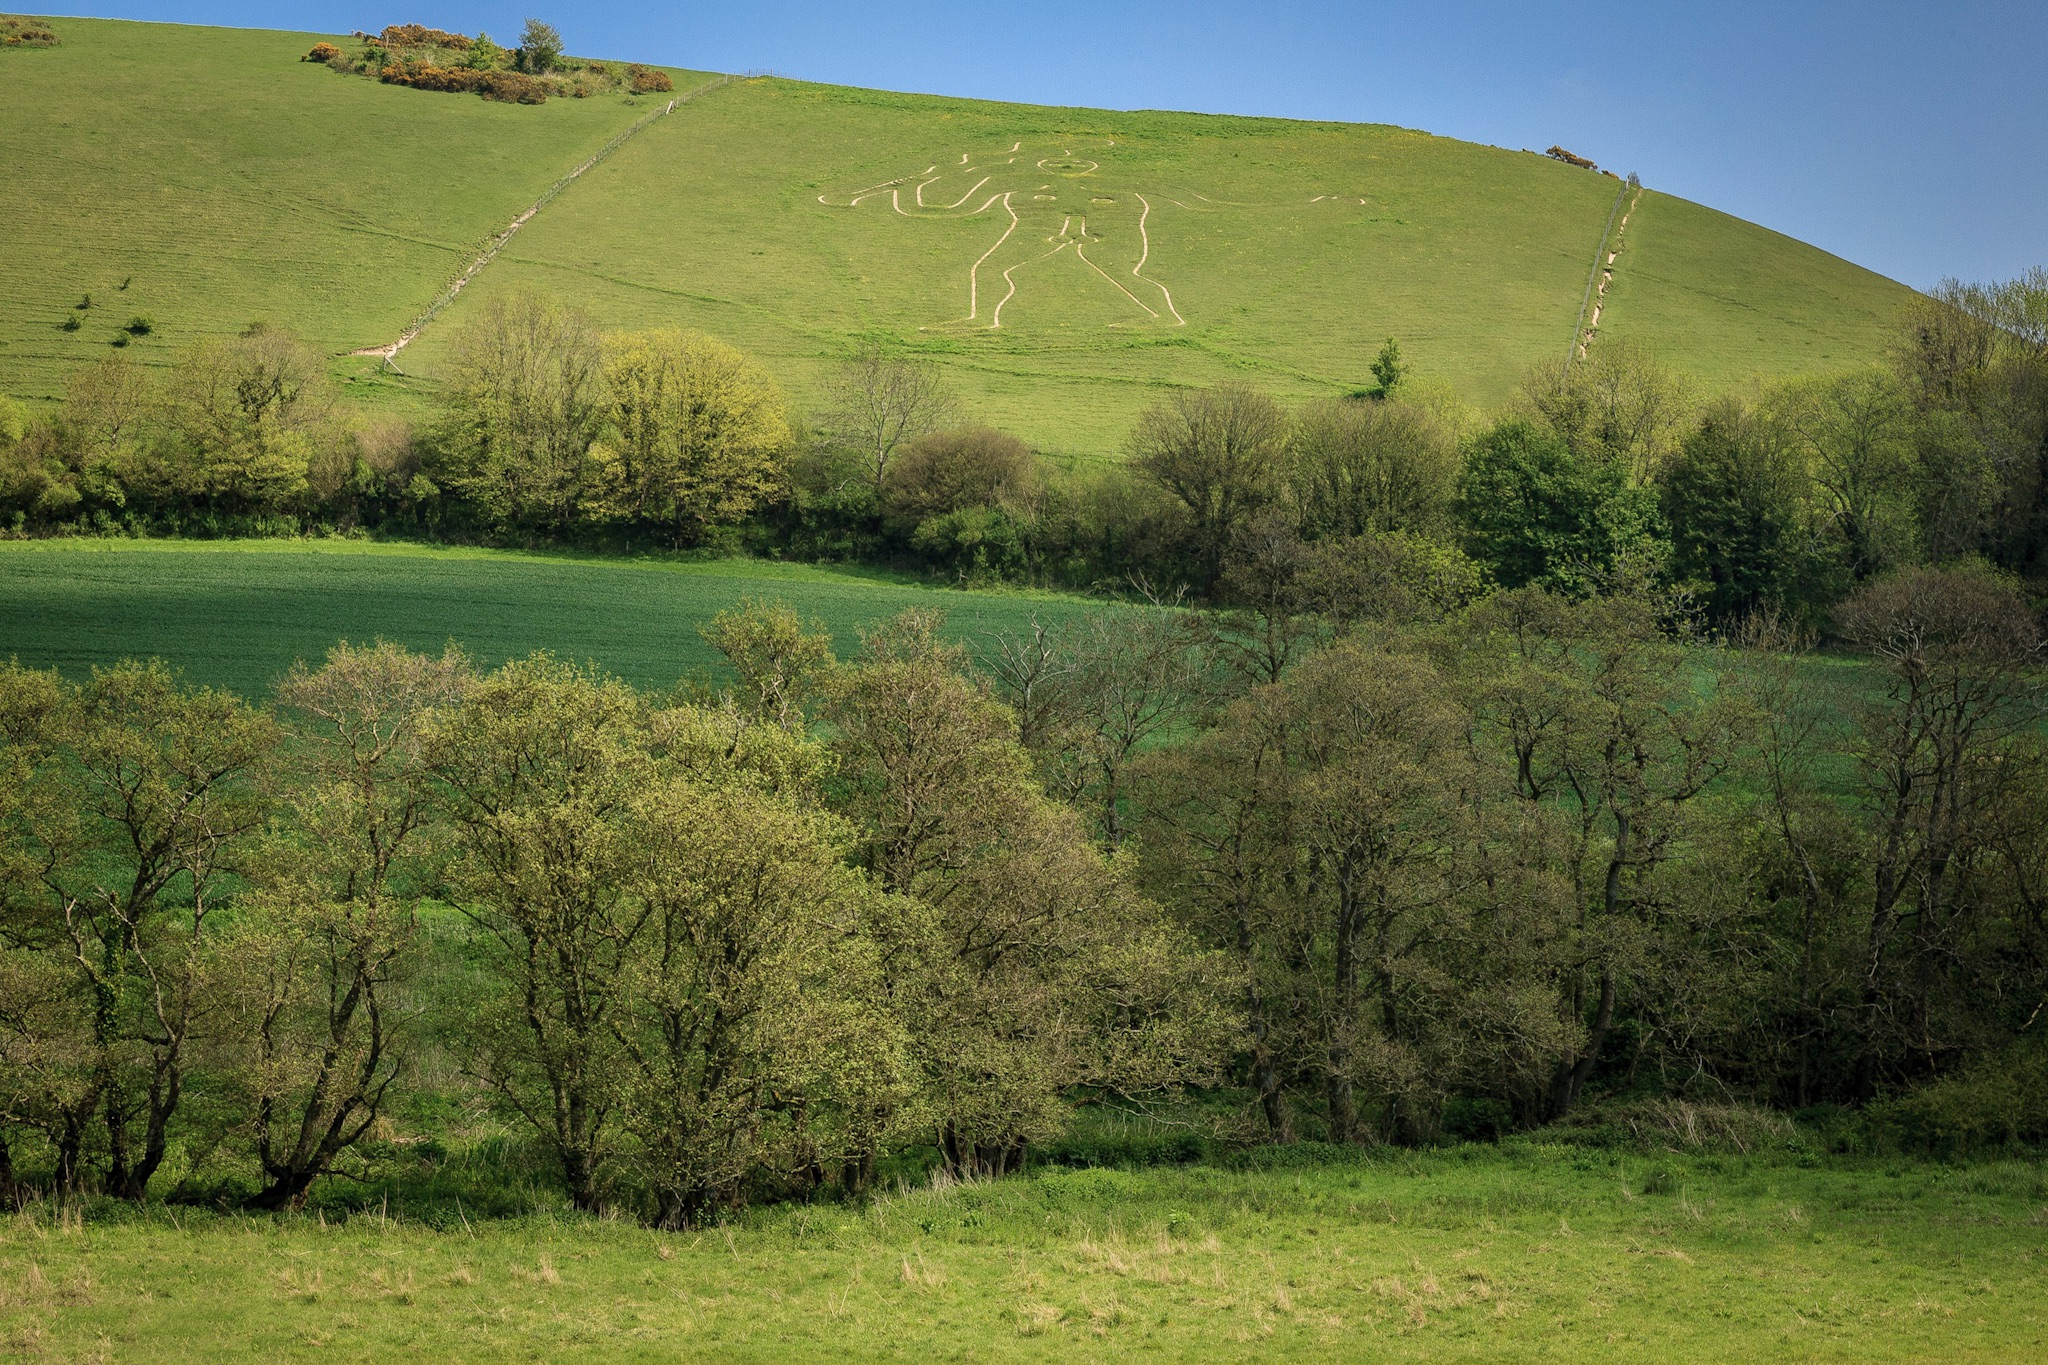 The Cerne Giant